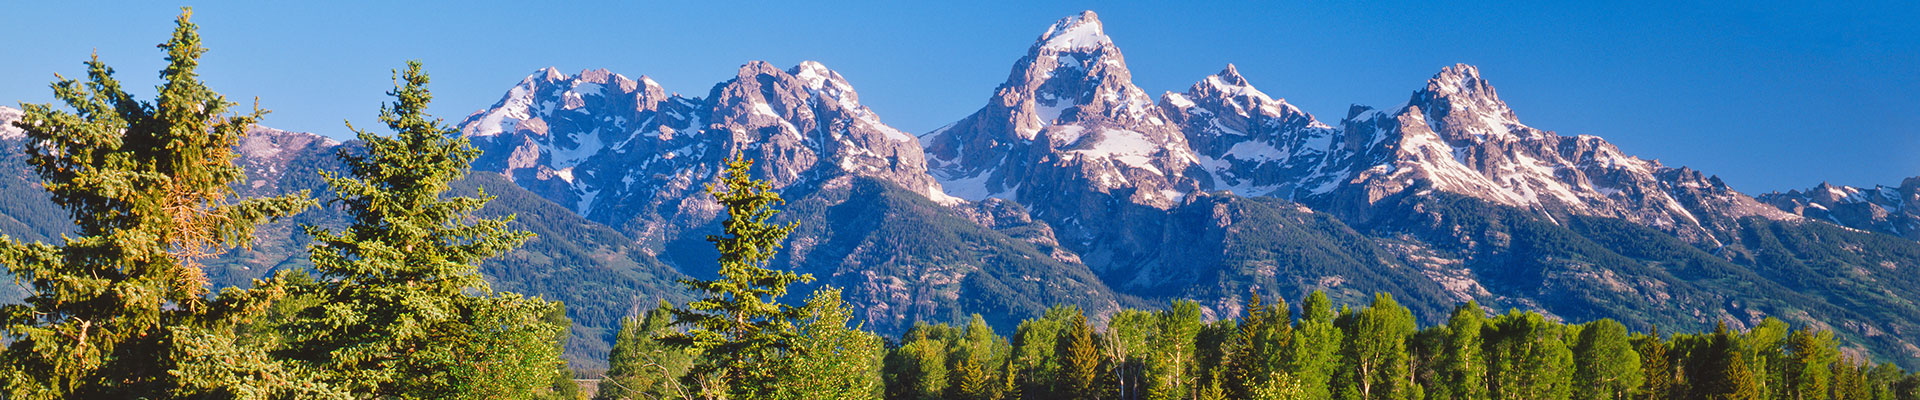 Fantasy RV Tours: 38 Day Ultimate Rockies (38UURP-082021)